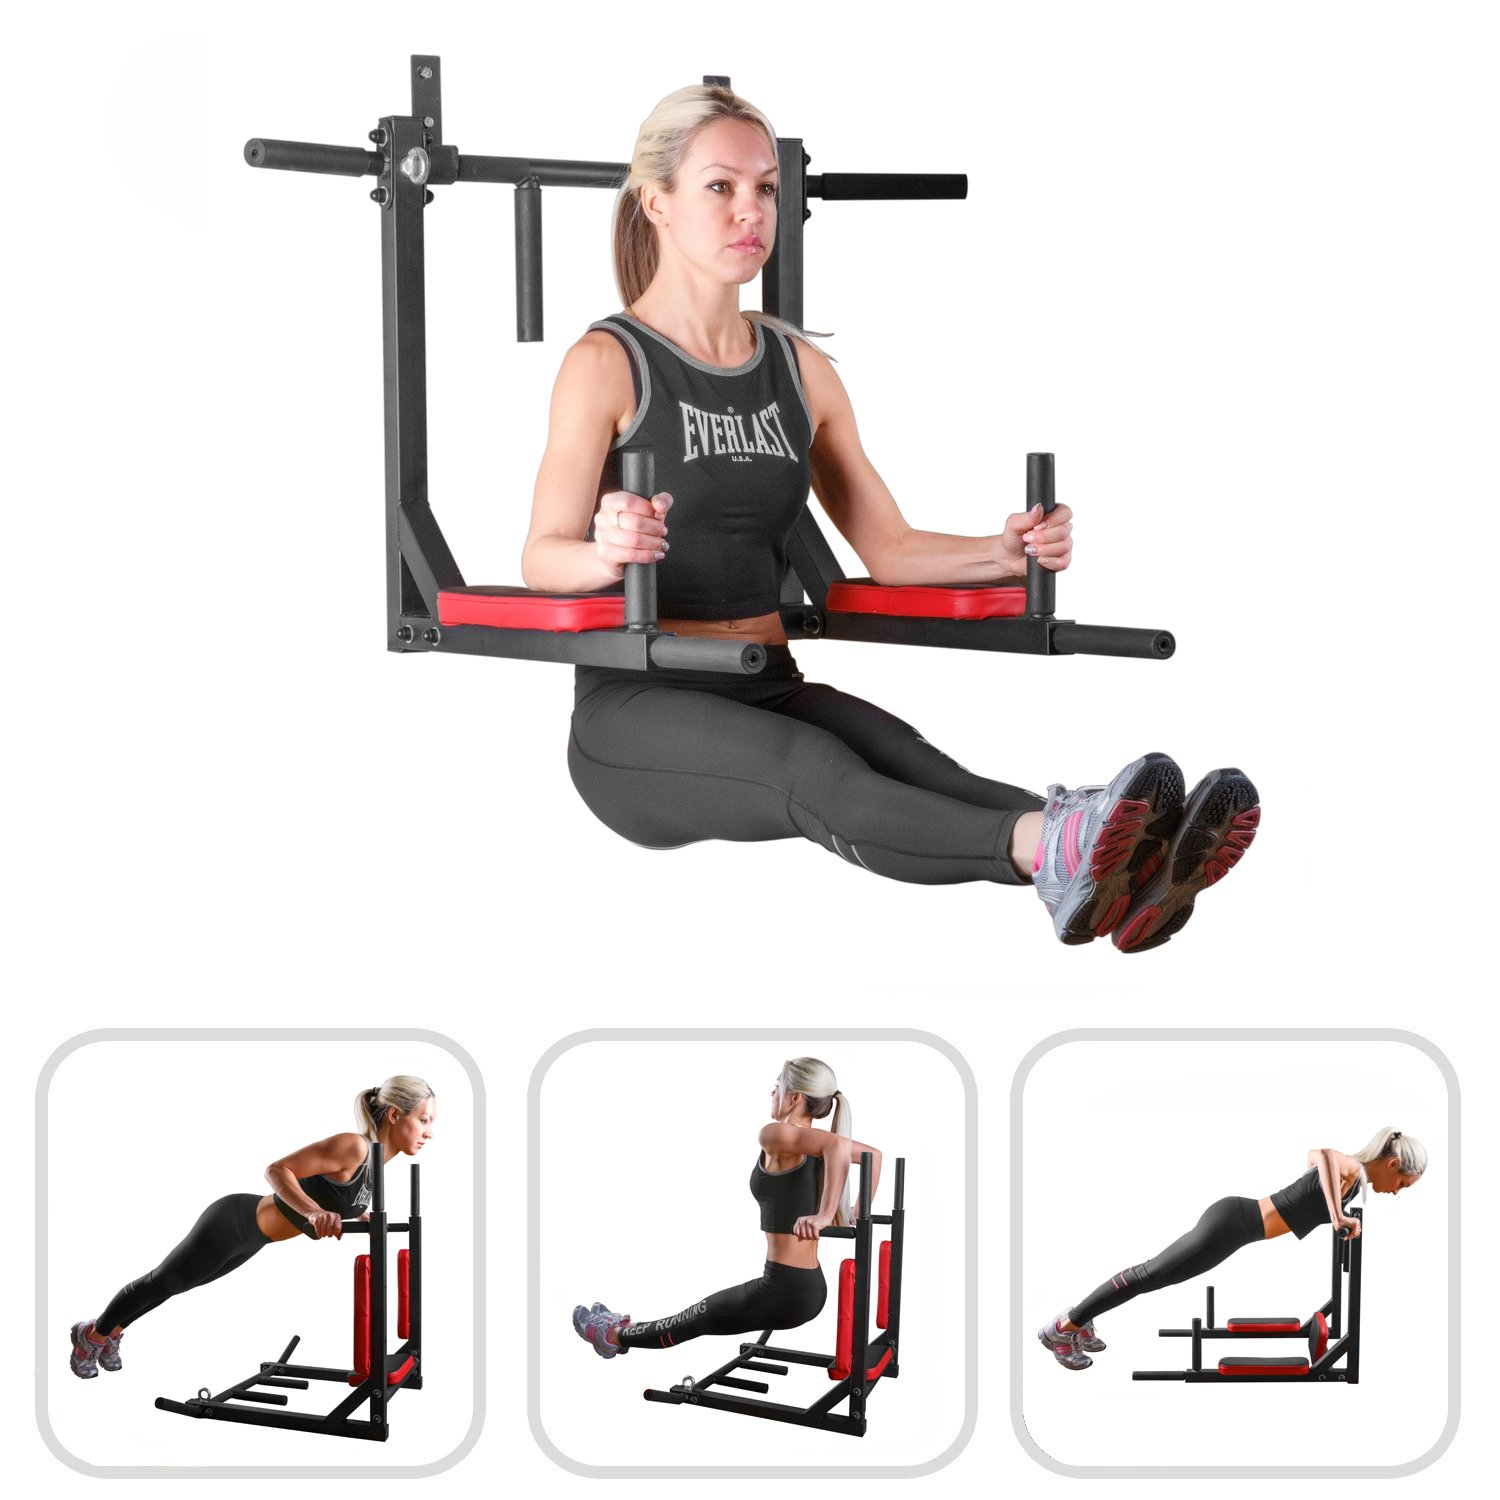 Wall Mounted Pull Up Bar - Pullup Bar Wall Mount - Chin Up Bar - Pull Up Bars and Dip Bar - Pullup and Dip Bar - Dip Station Pull Bar - Pullup Bars Outdoor and Home Room or Garage Gym Multi Grip - Pul by BAR2FIT QUALITY SPORTS EQUIPMENT (Image #4)